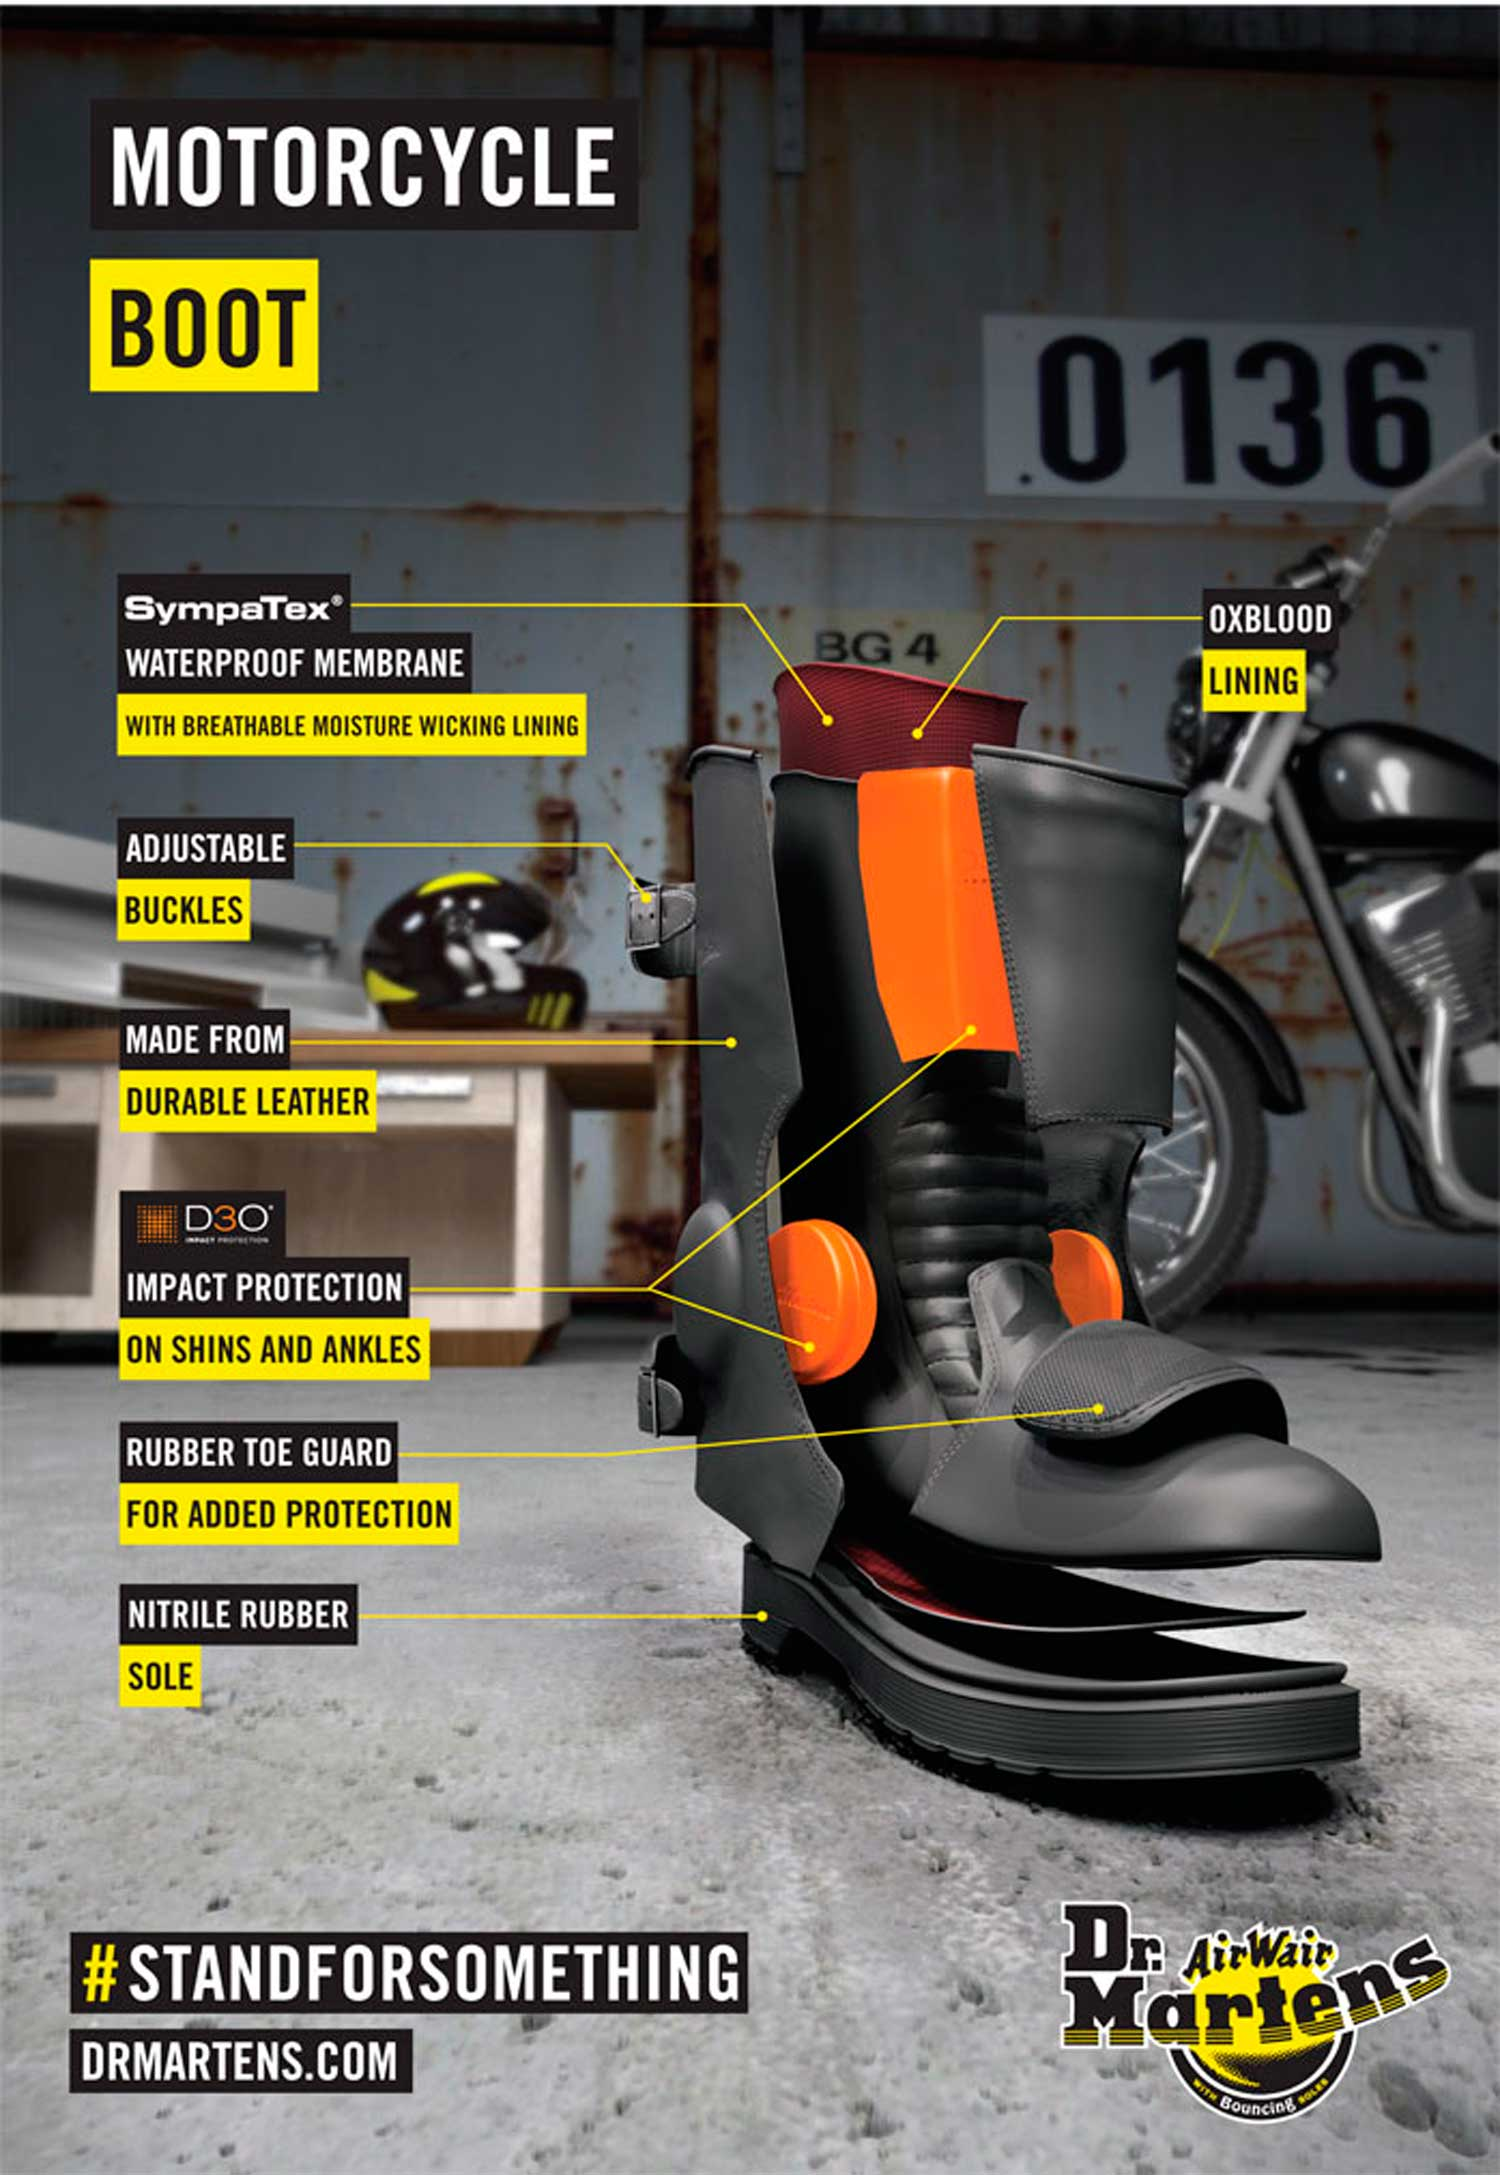 Dr-Martens-motorcycle-boots